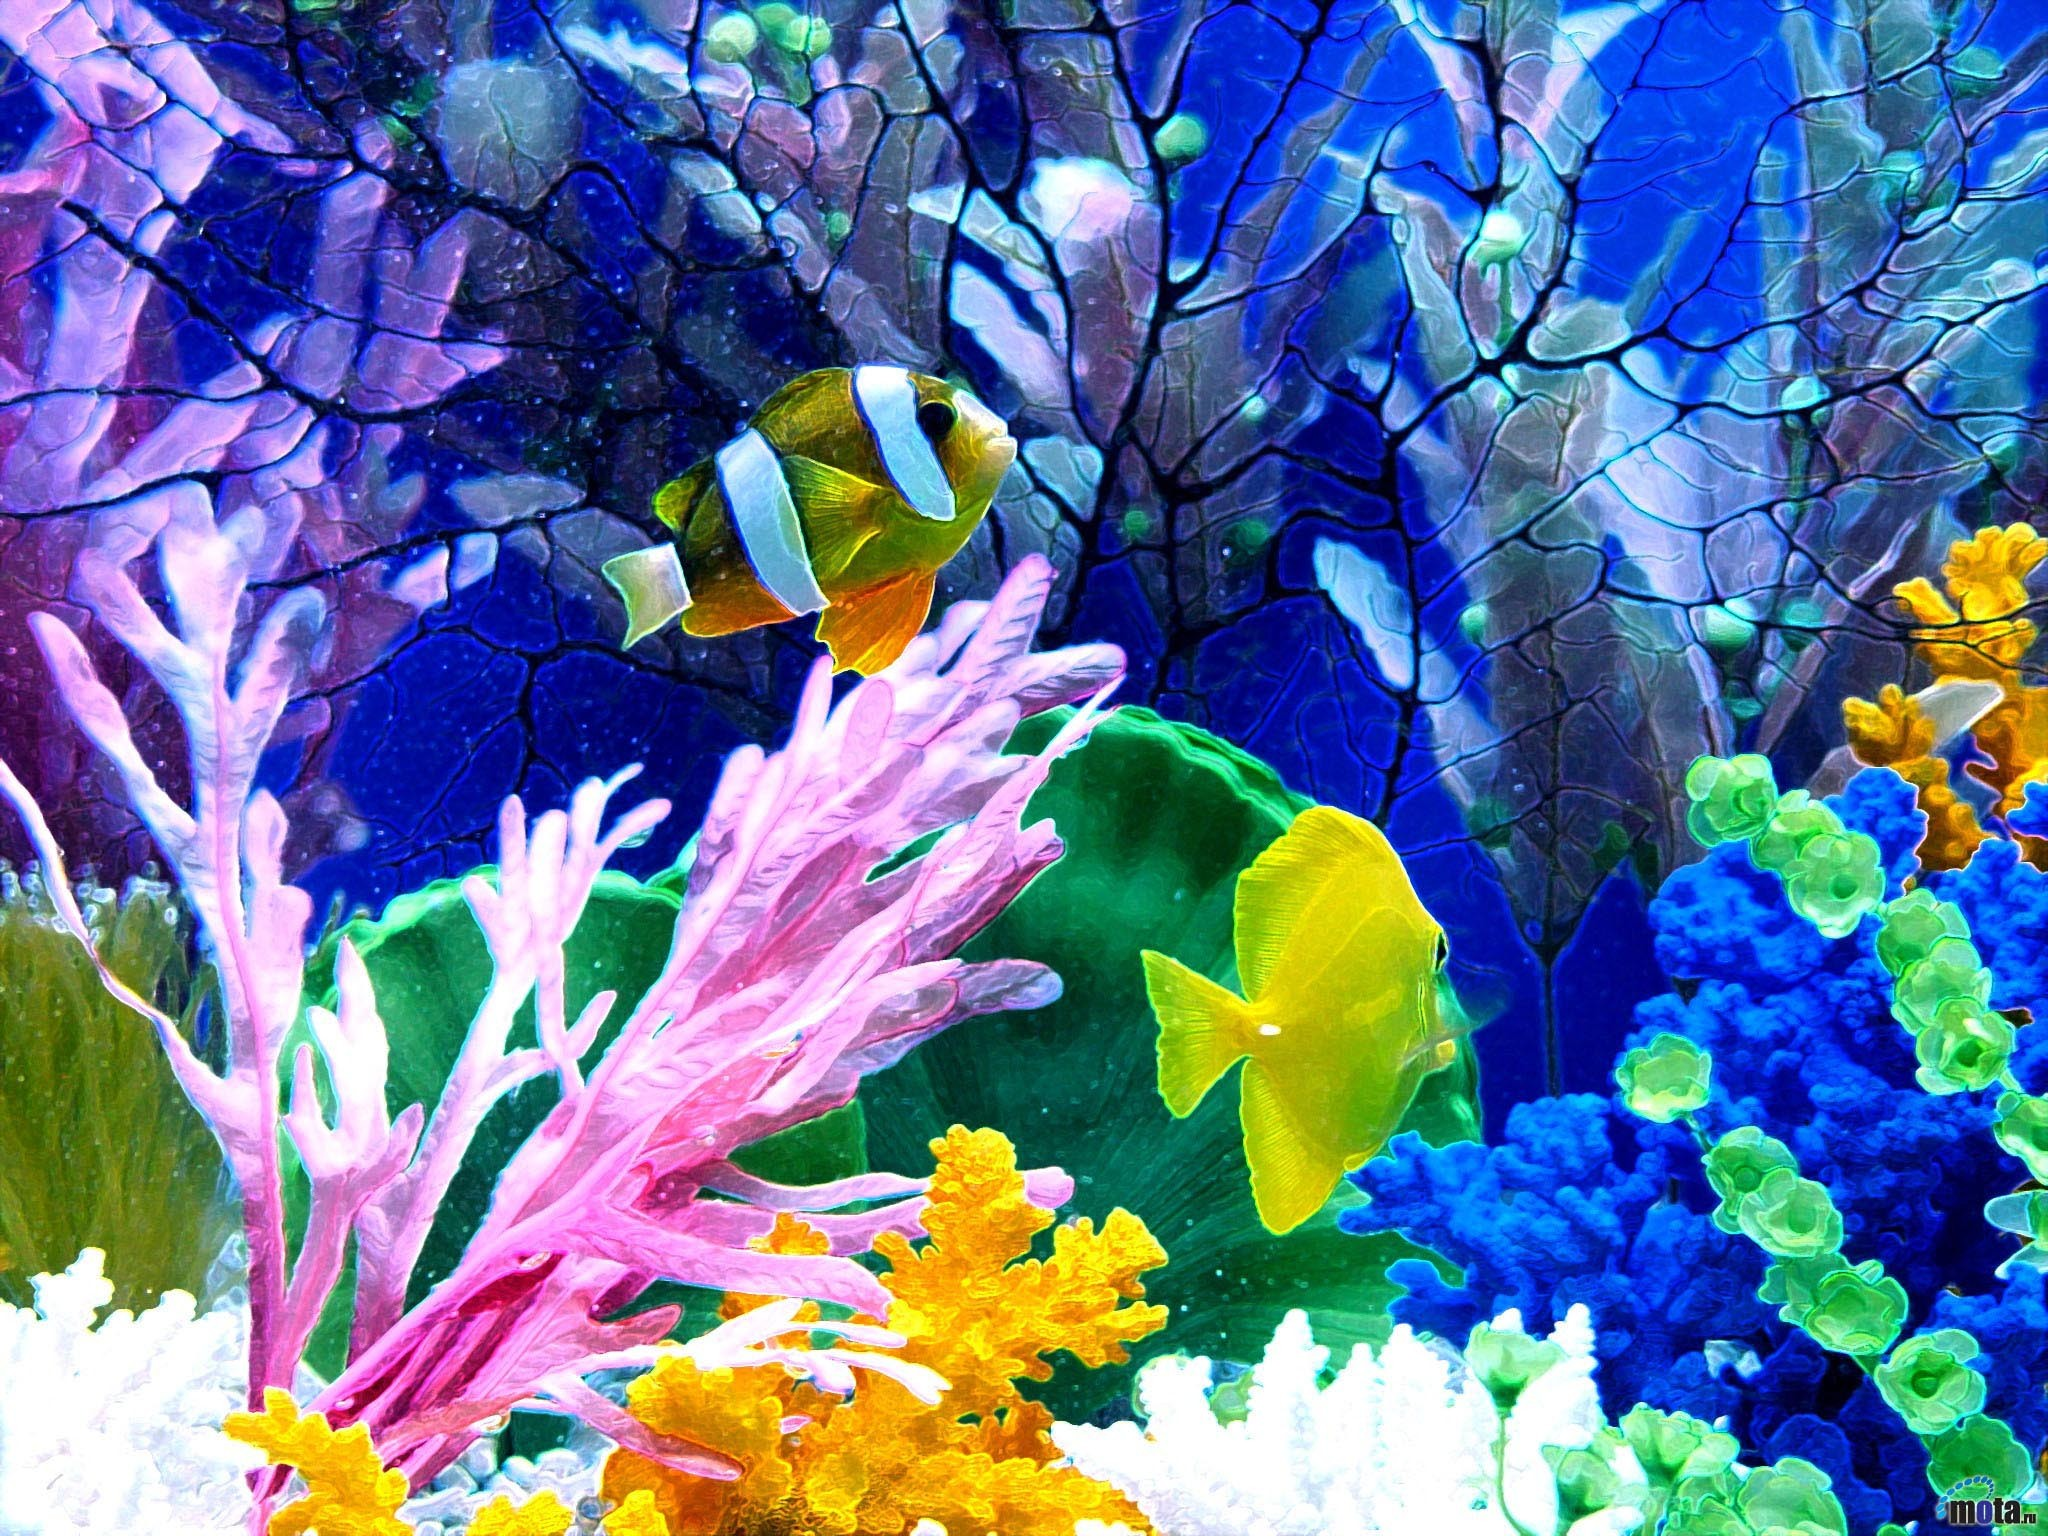 Aquarium background ·① Download free wallpapers for desktop and mobile devices in any resolution ...